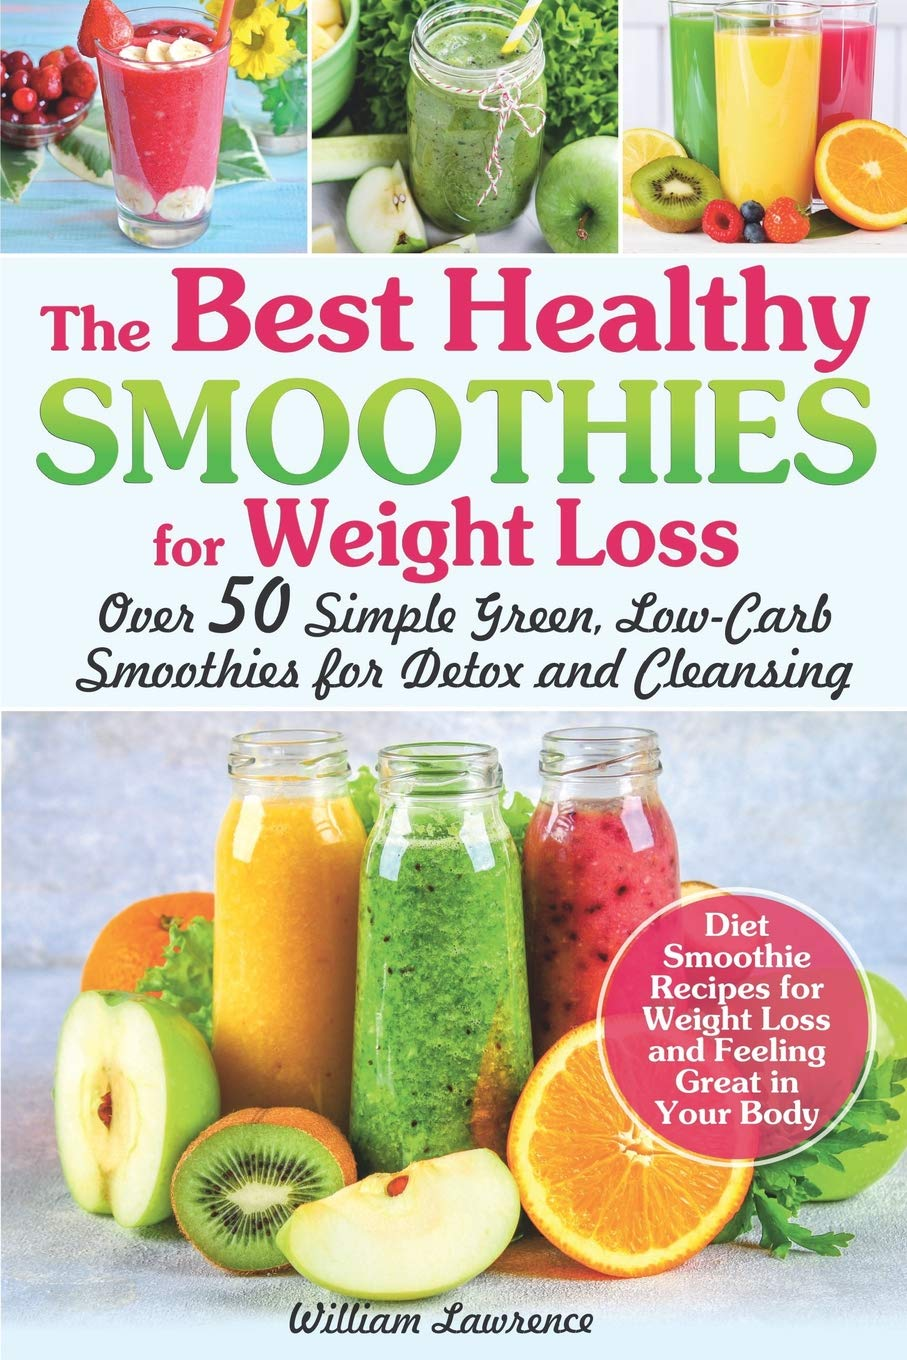 The Best Healthy Smoothies For Weight Loss Over 50 Simple Green Low Carb Smoothies For Detox And Cleansing Diet Smoothie Recipes For Weight Loss And Feeling Great In Your Body Lawrence William 9781075252228